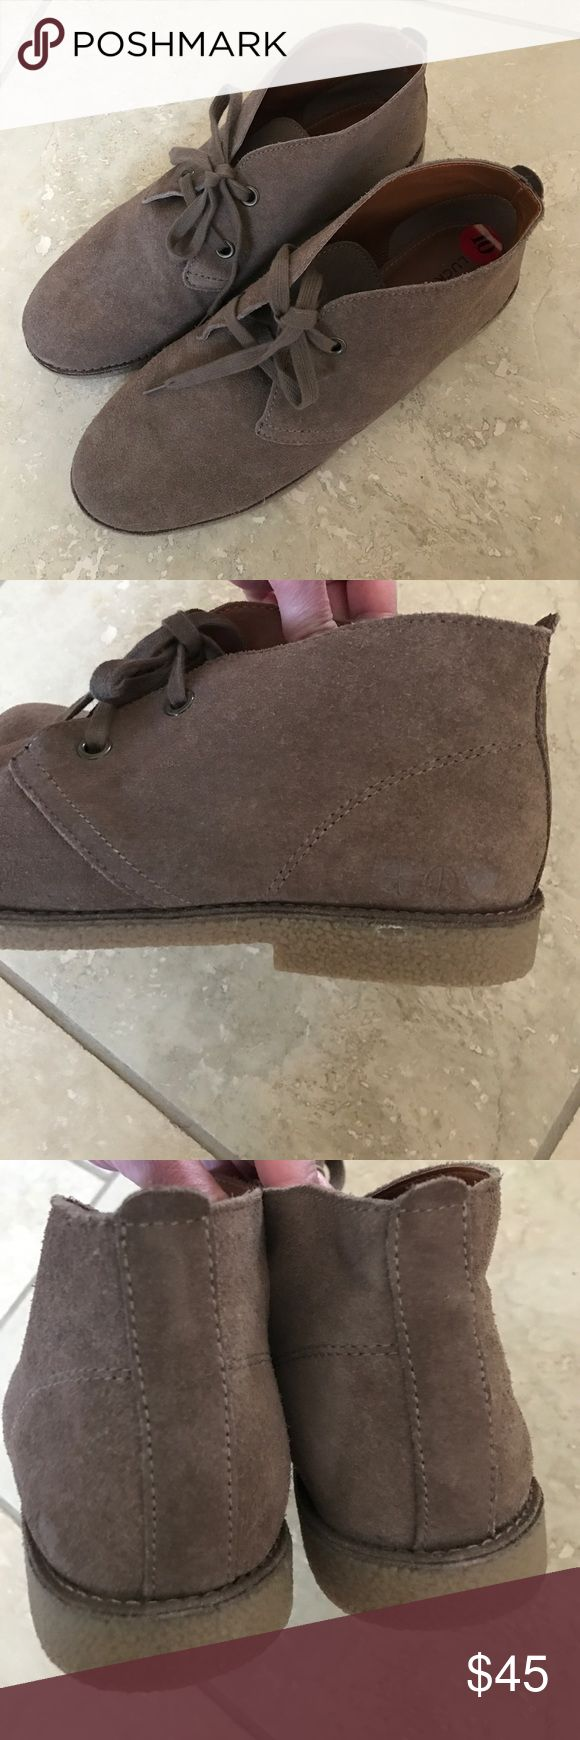 Suede low Lucky Brand boots In new condition!  Flat low boot!  Cute! Lucky Brand Shoes Ankle Boots & Booties